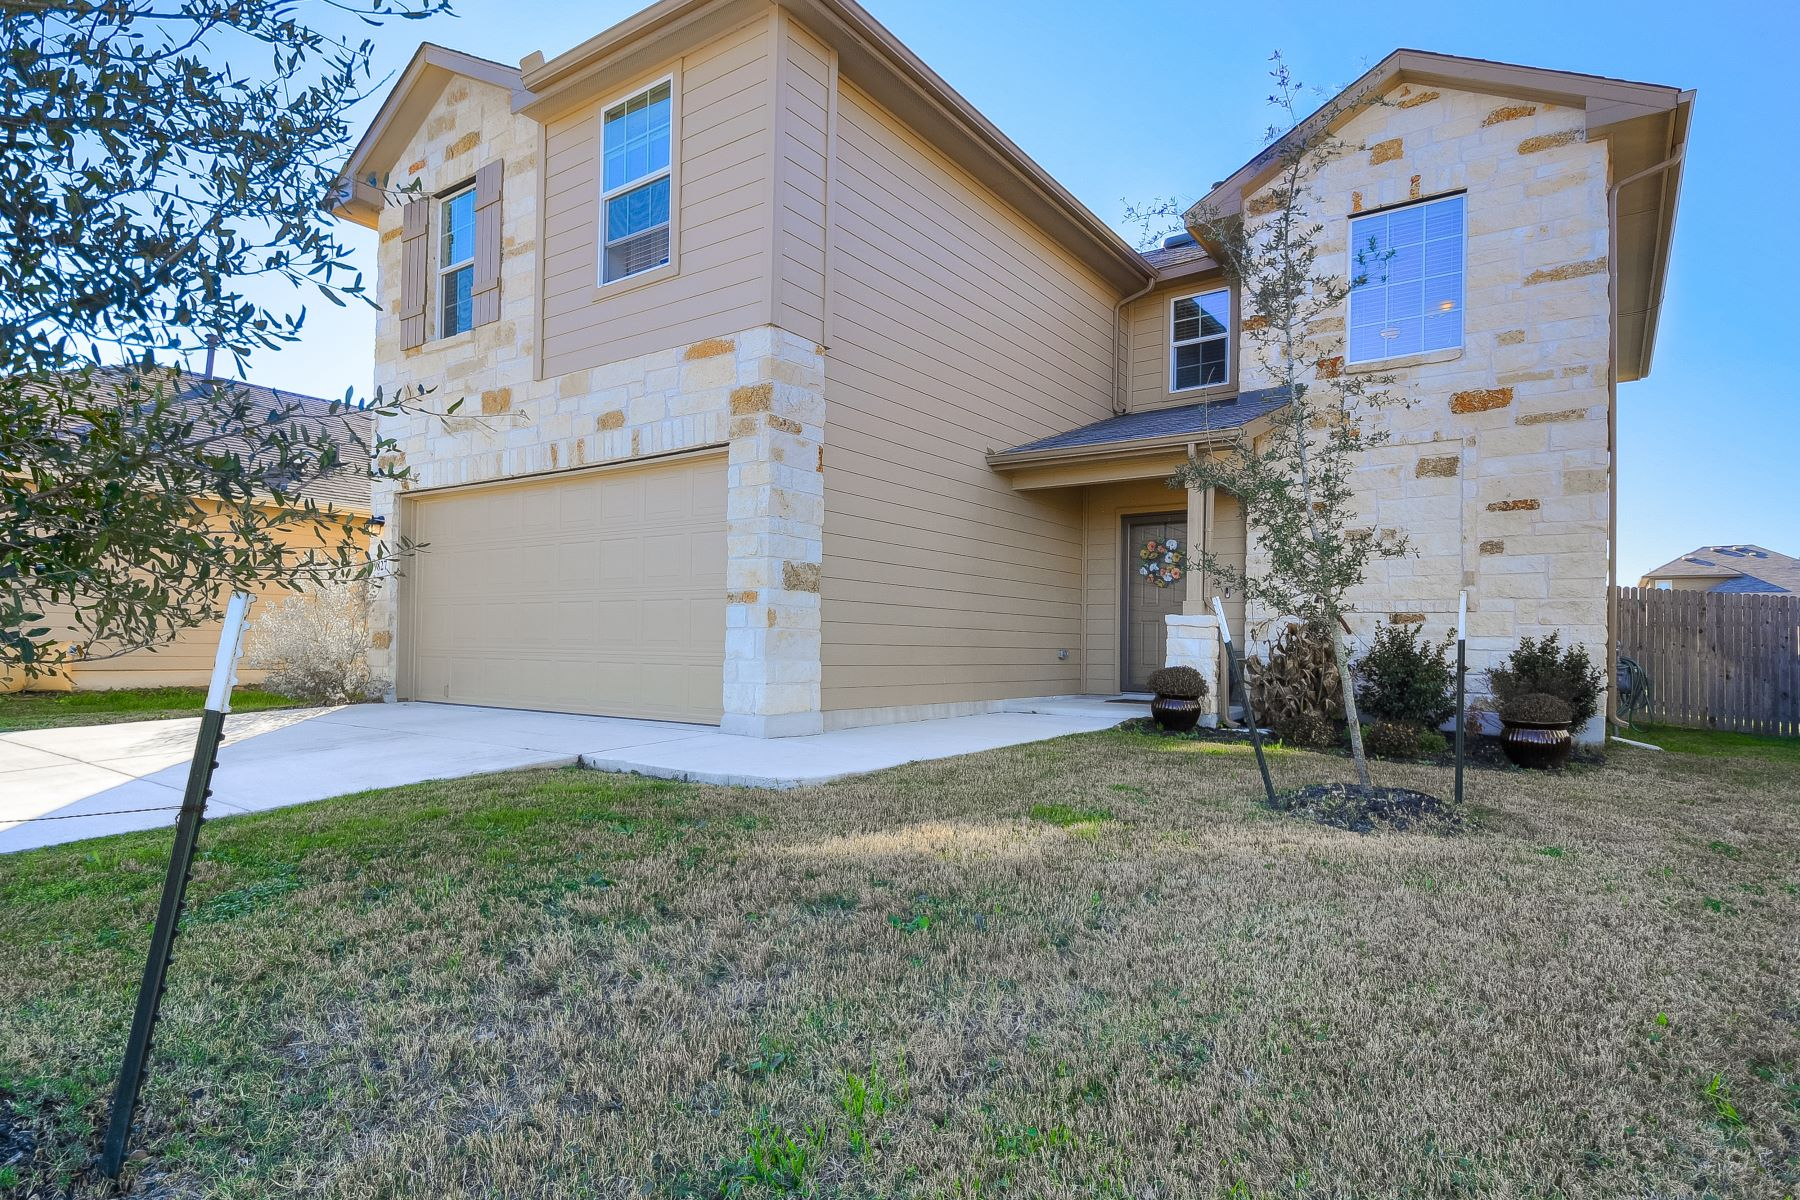 Single Family Homes for Active at 9827 Selestat Pt., Schertz, TX 78154 9827 Selestat Pt. Schertz, Texas 78154 United States